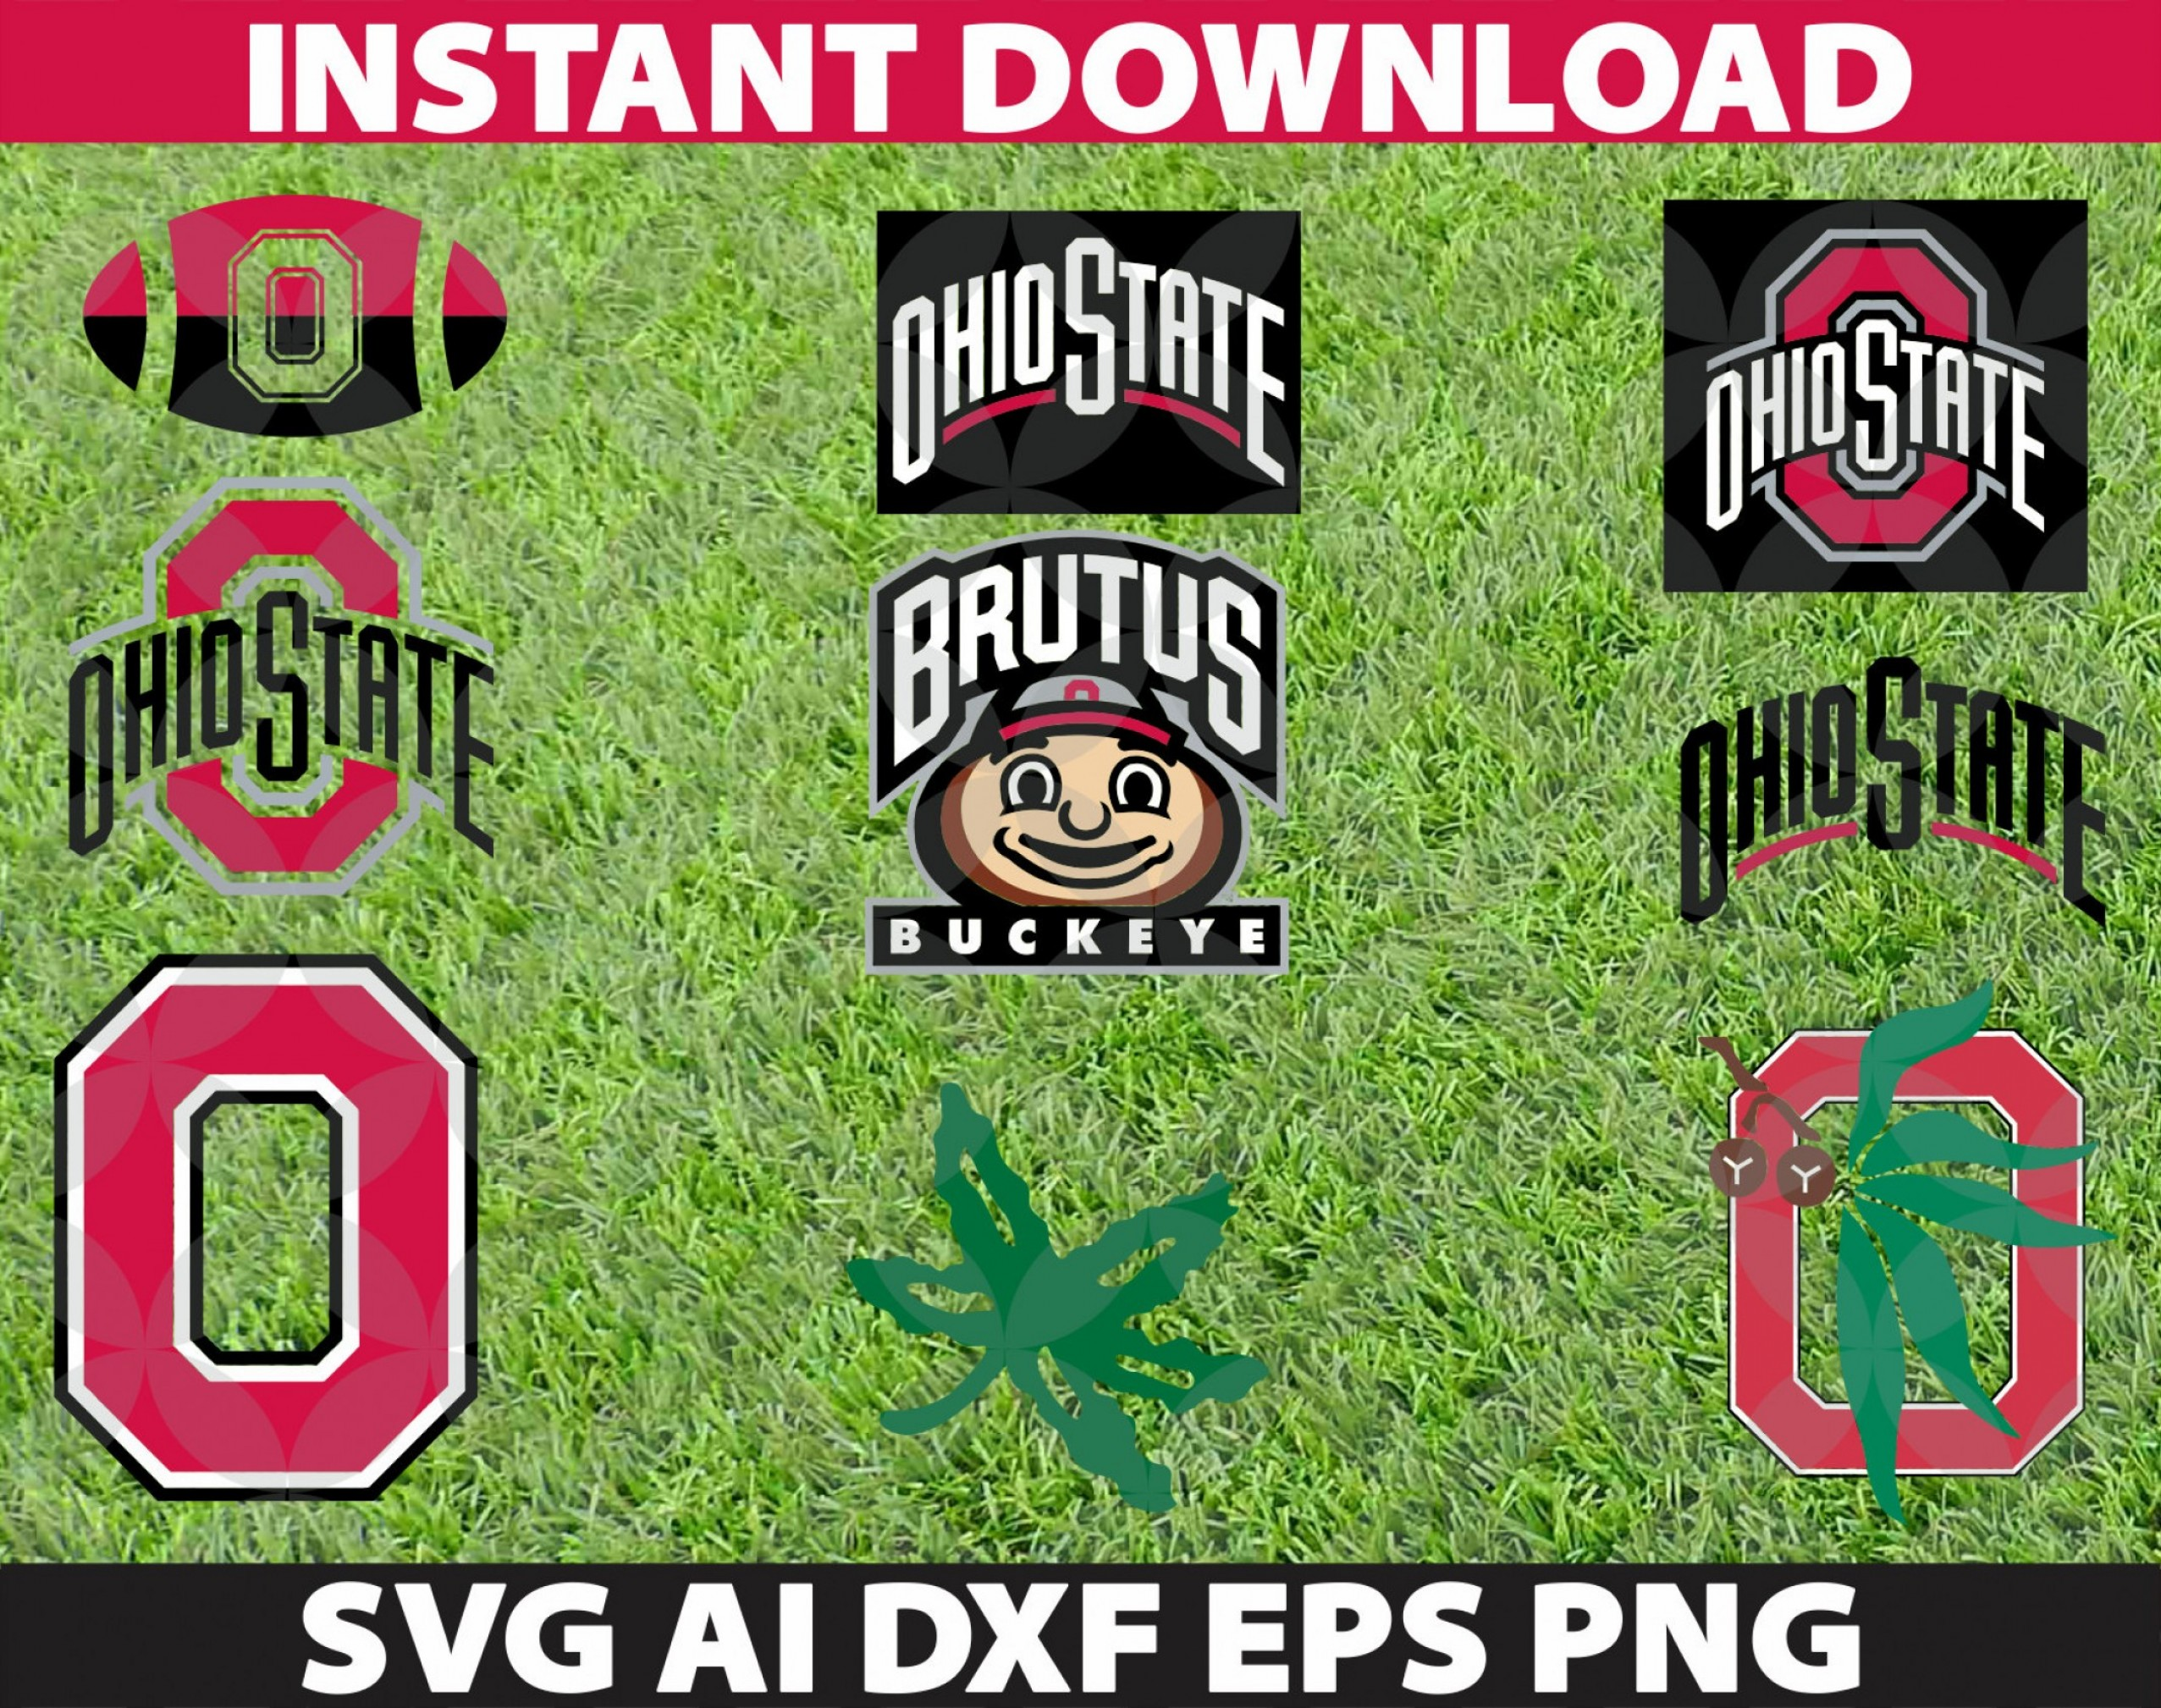 Buckeye Ohio State Outline Vector: Ohio State Buckeyes Svg Eps Ai Dxf Png